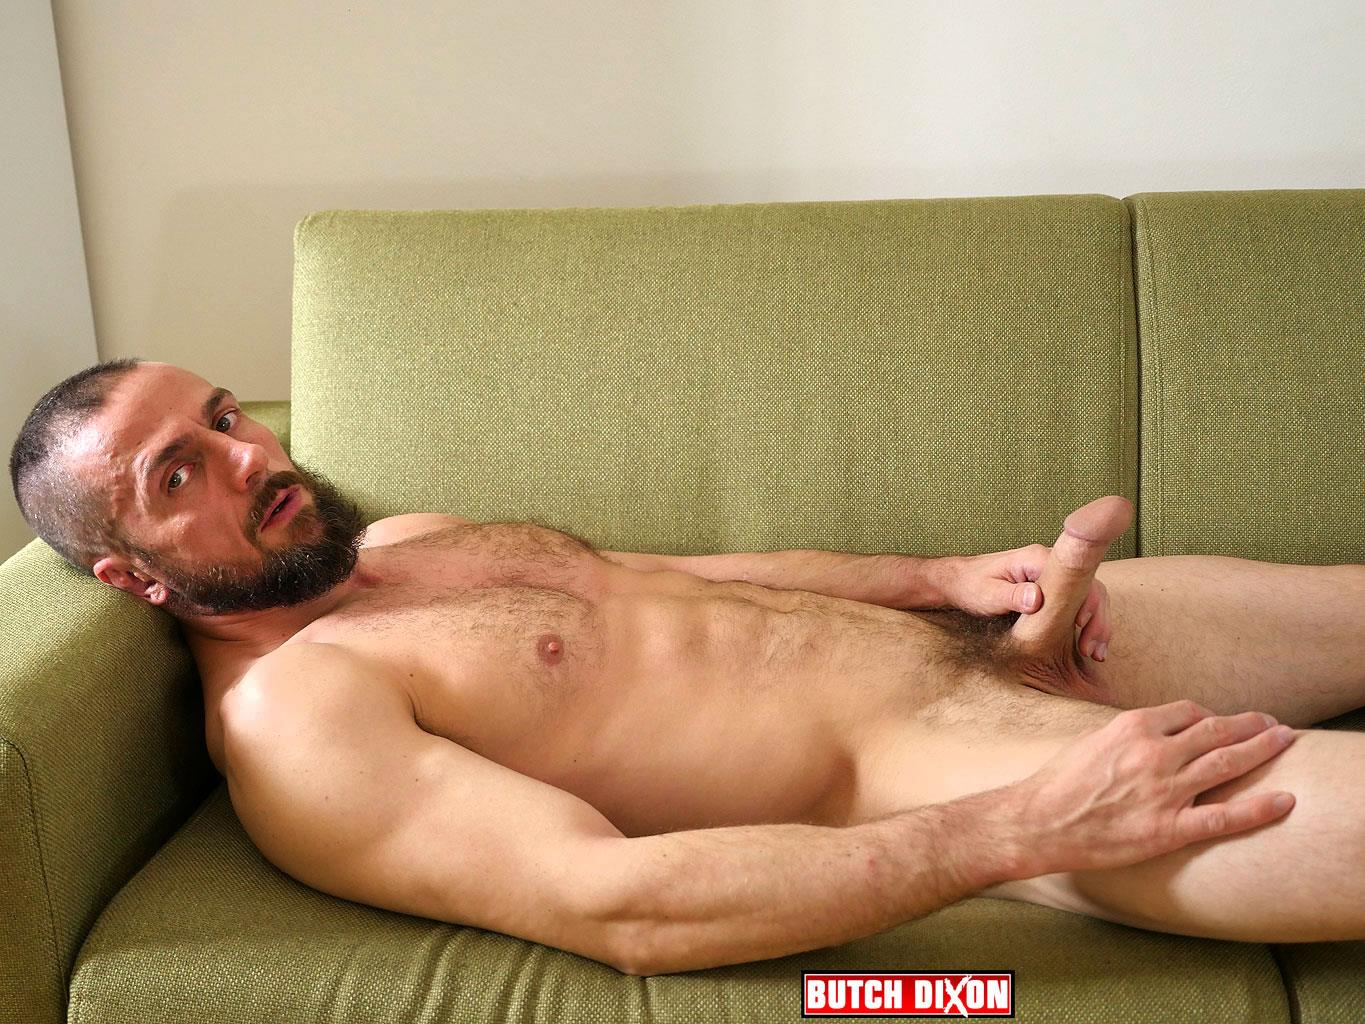 eyes and jace and troy kiss eat and suck you can handle come